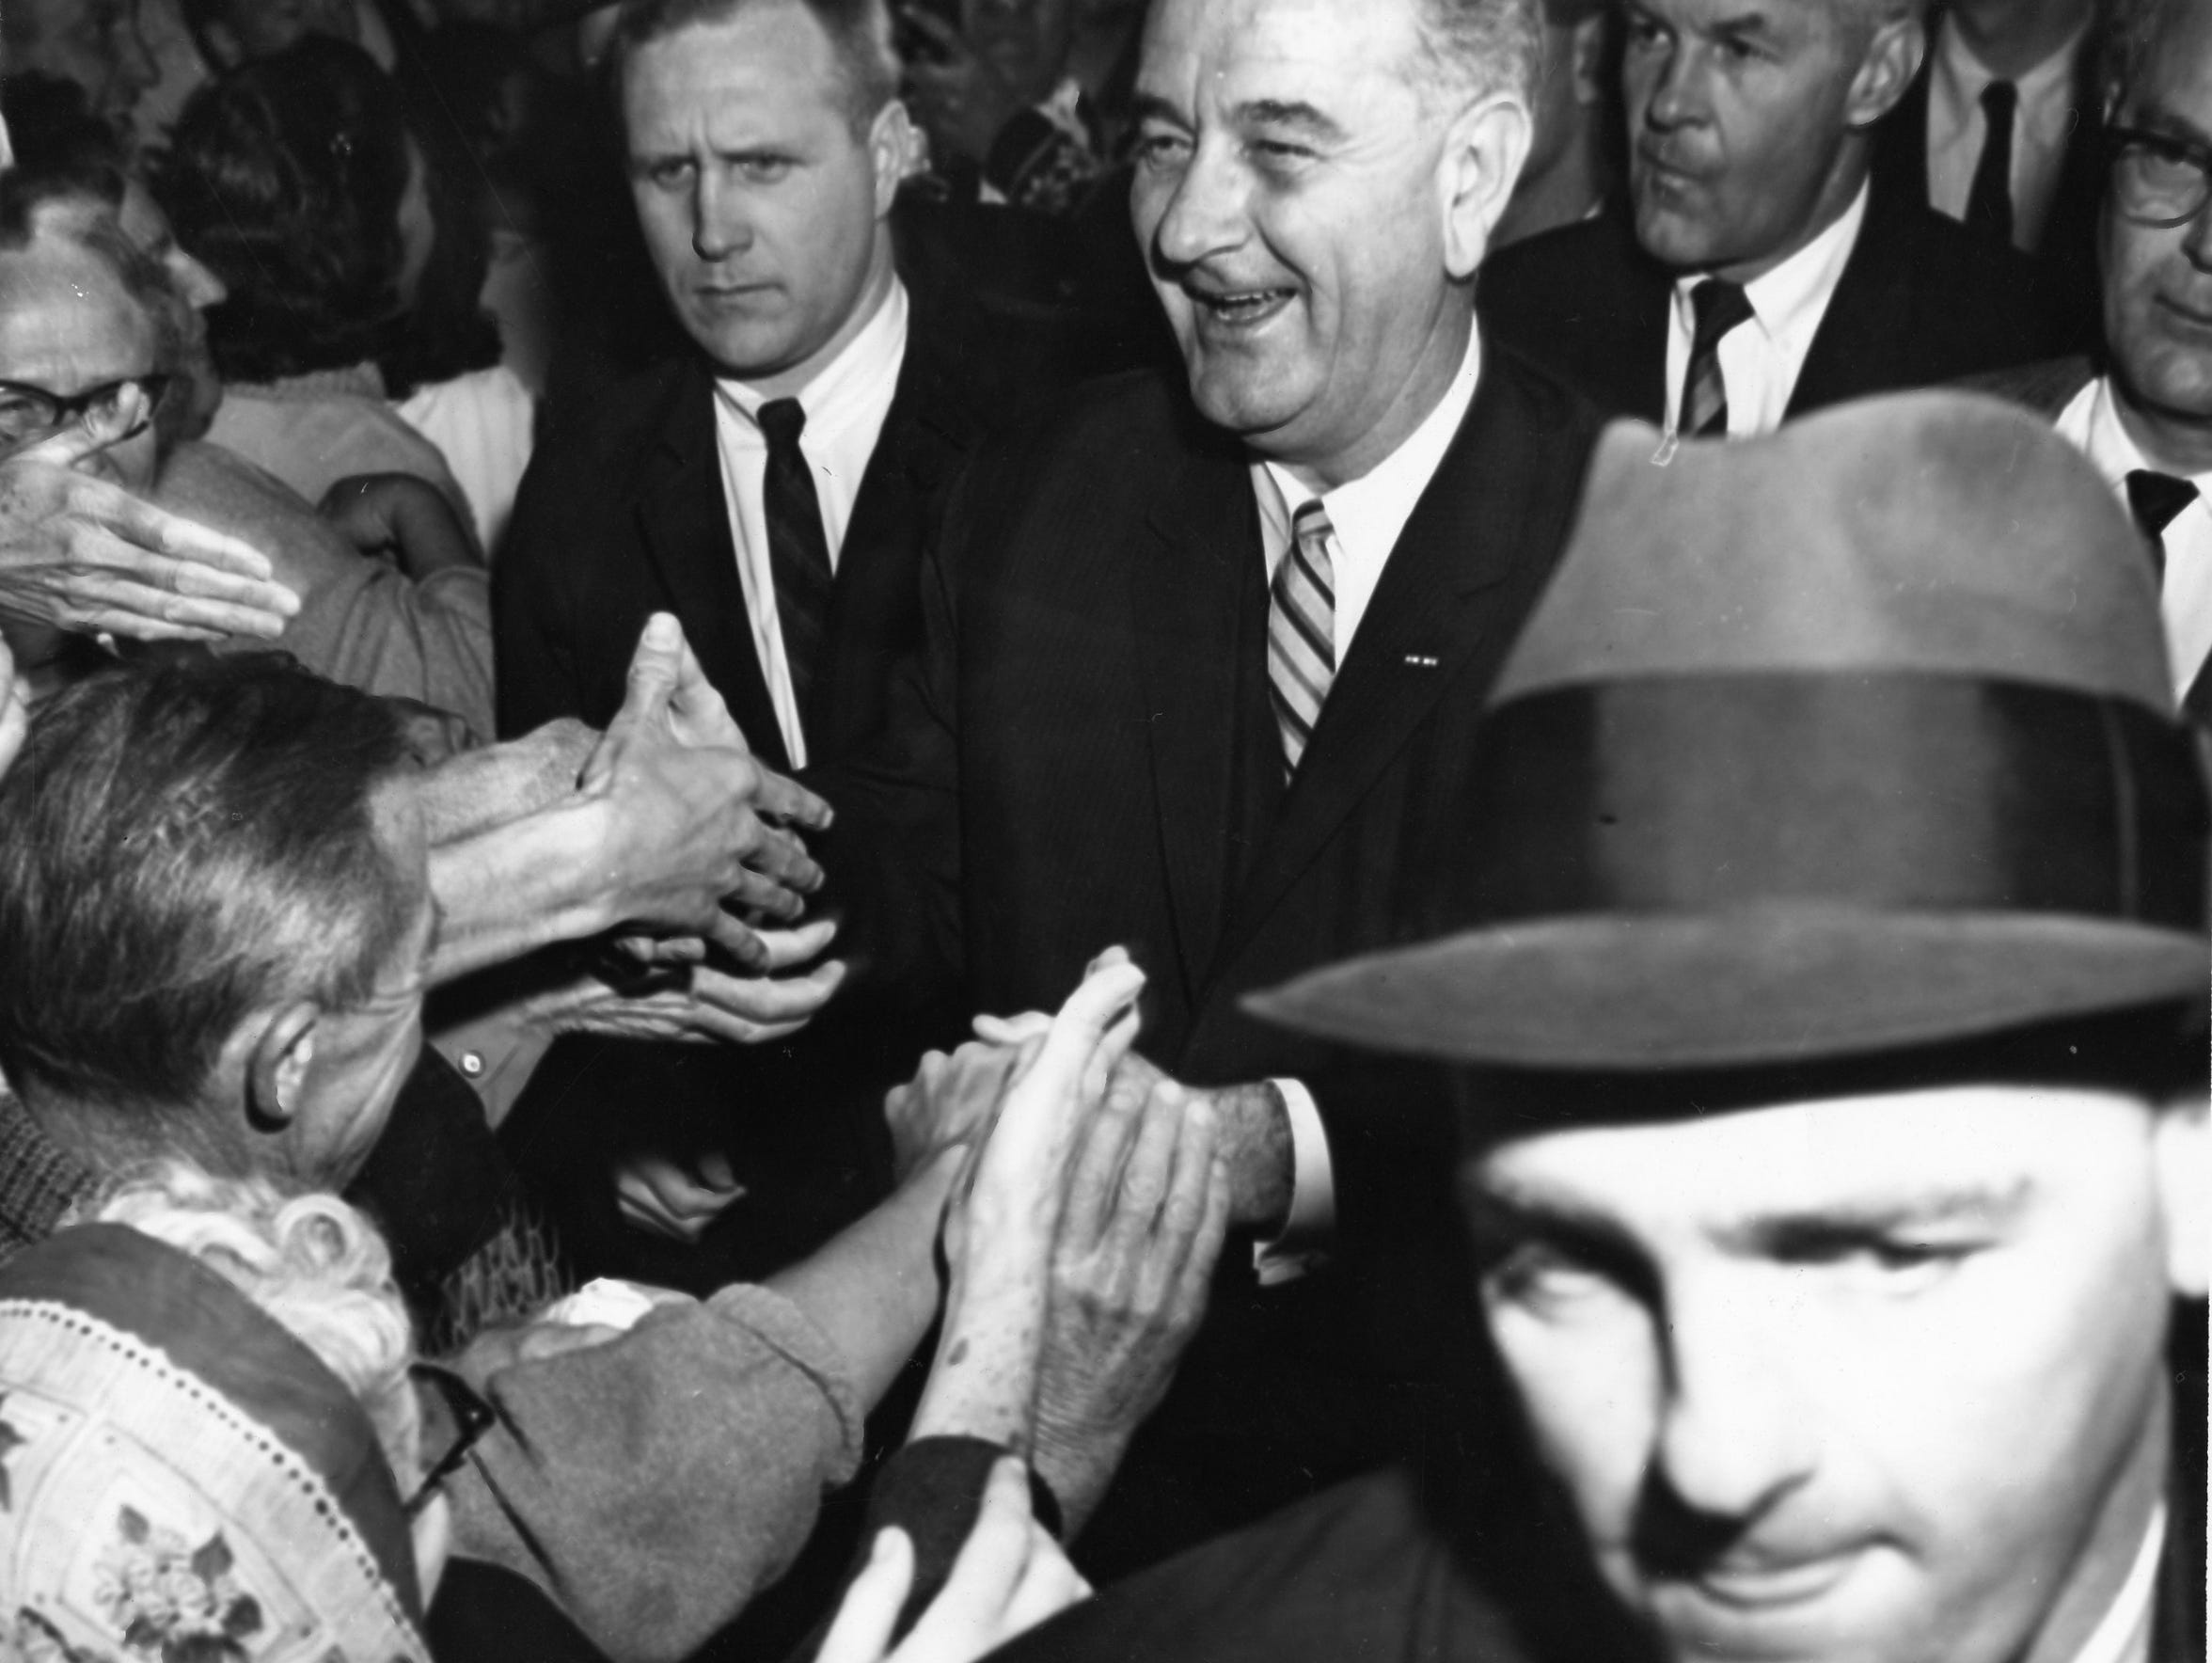 President Lyndon B. Johnson shaking hands with the